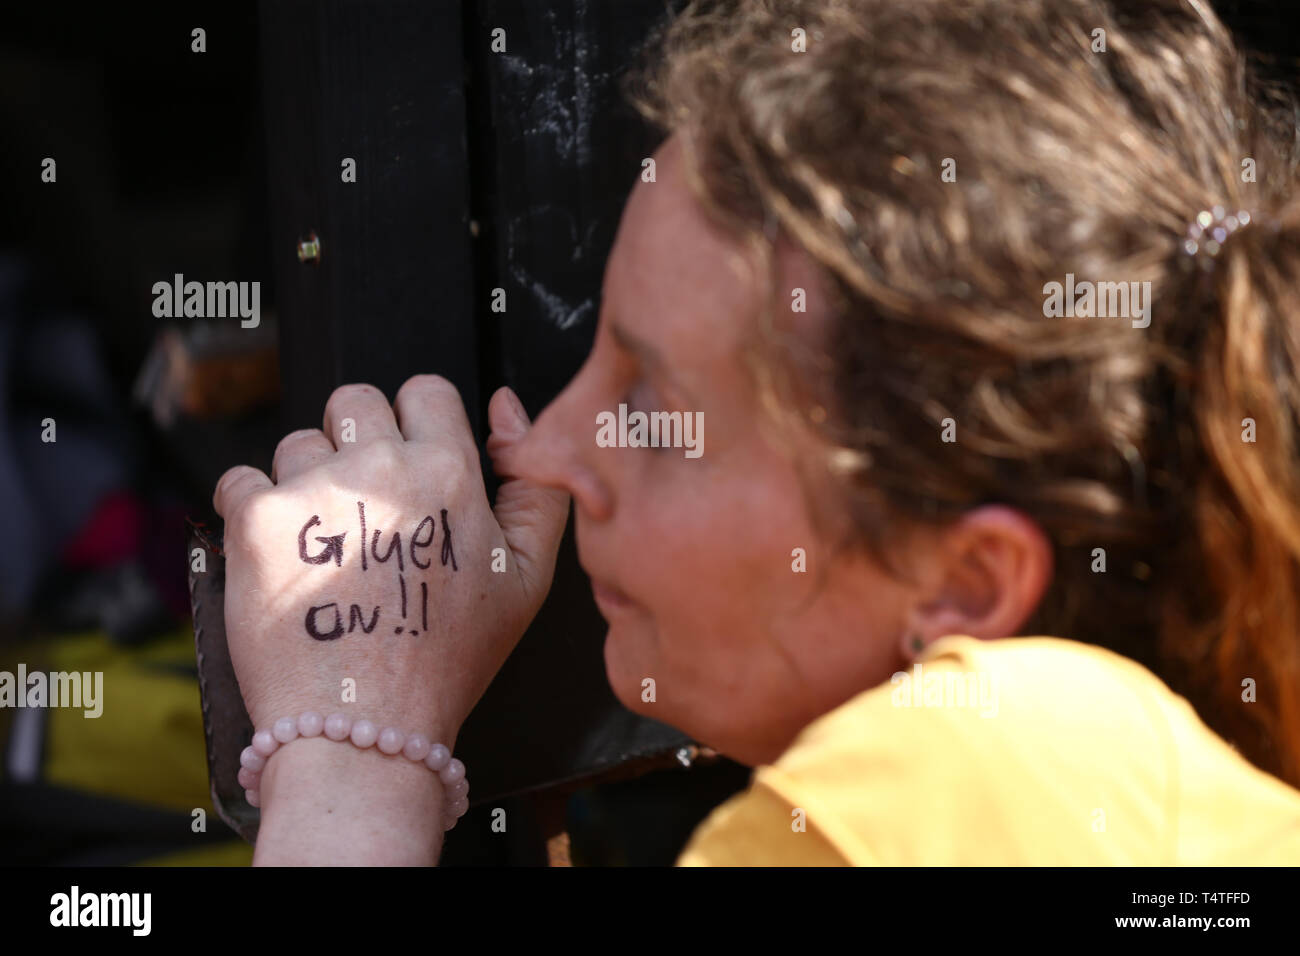 A climate activist with a warning note written on her hand during an Extinction Rebellion demonstration at Oxford Circus, London. Londoners face a fourth day of disruption in the capital, despite nearly 400 arrests. - Stock Image